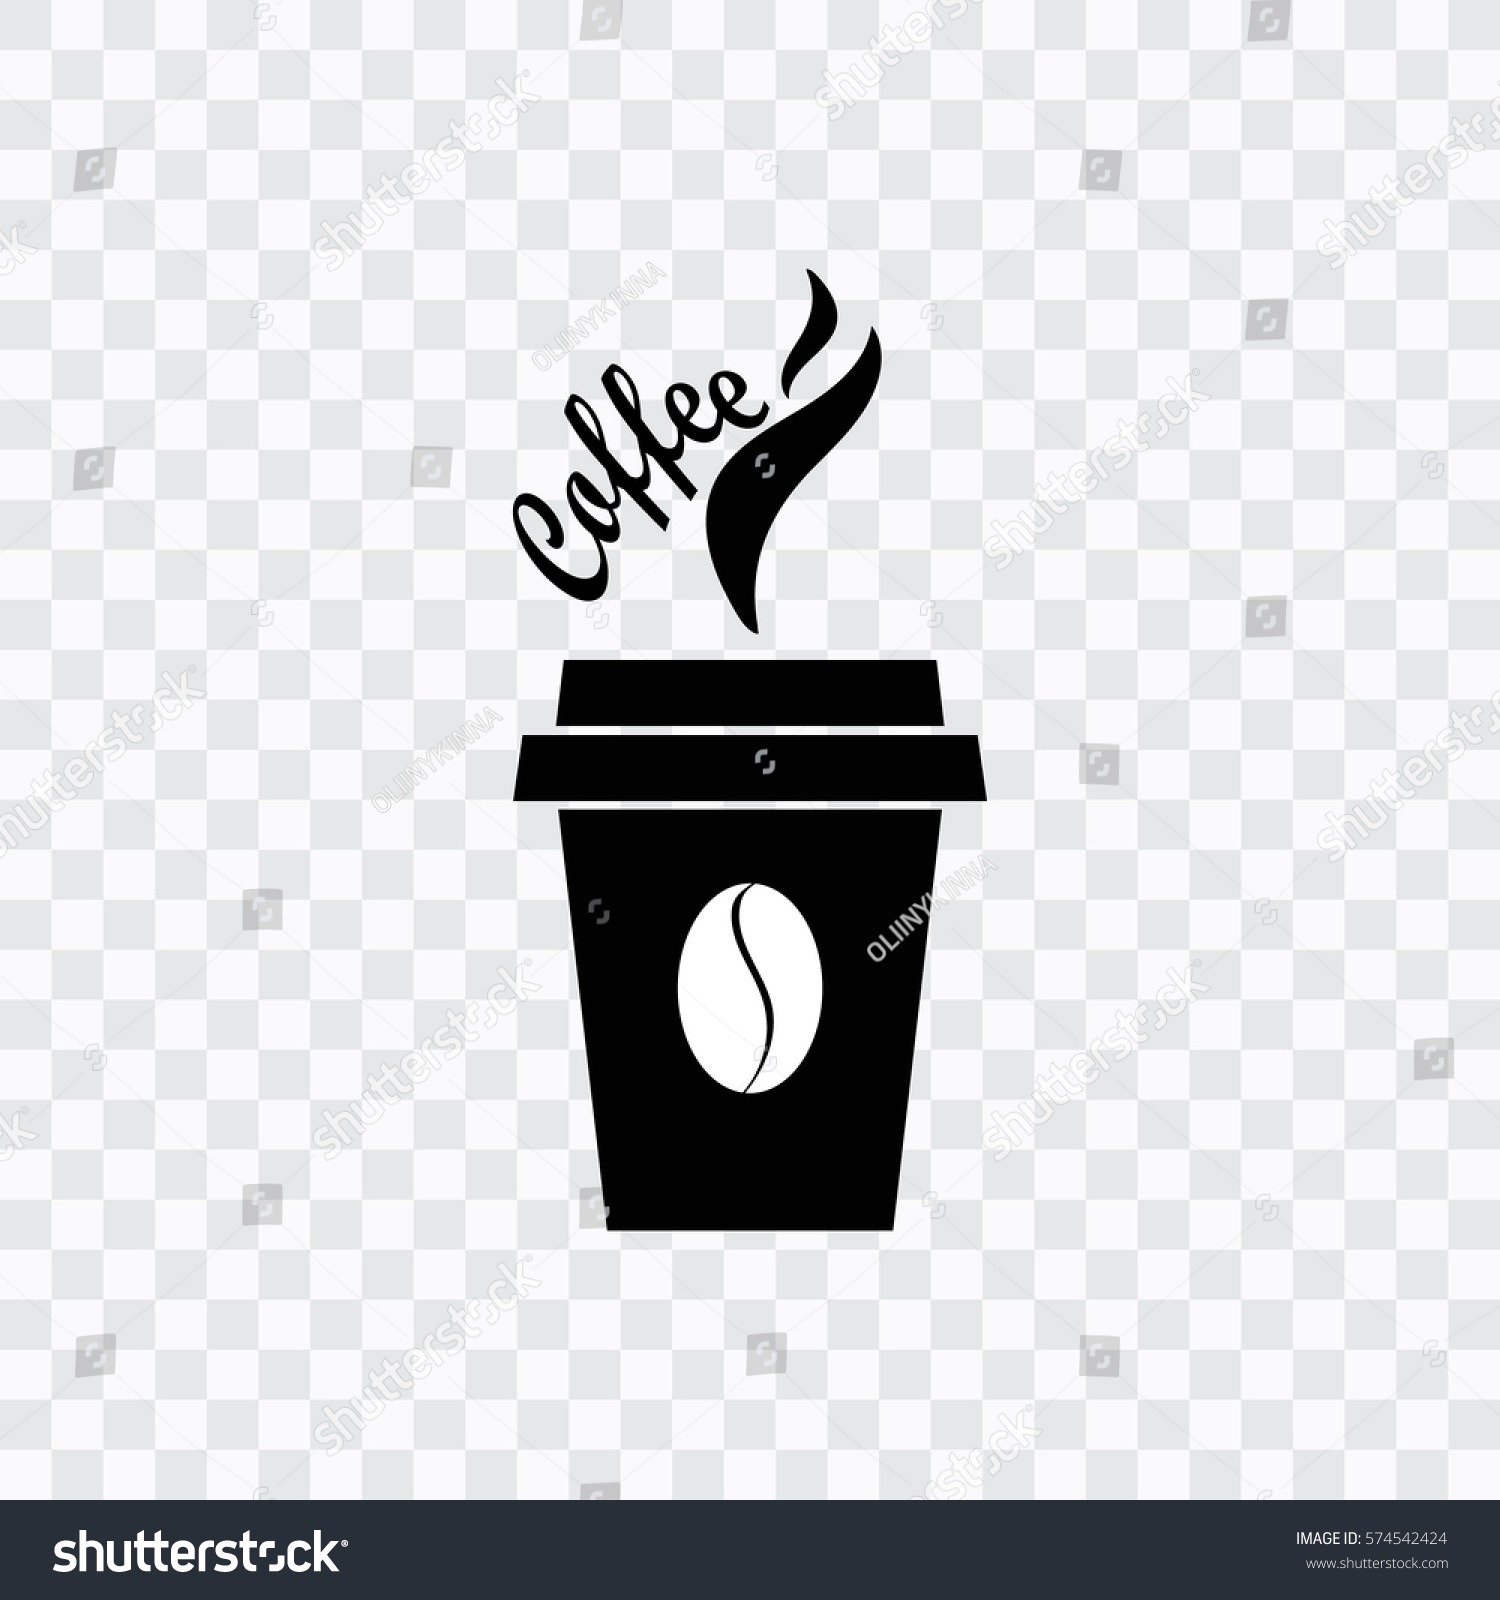 Coffee cup transparent - Coffee Cup Icon With Coffee Beans Transparent Background